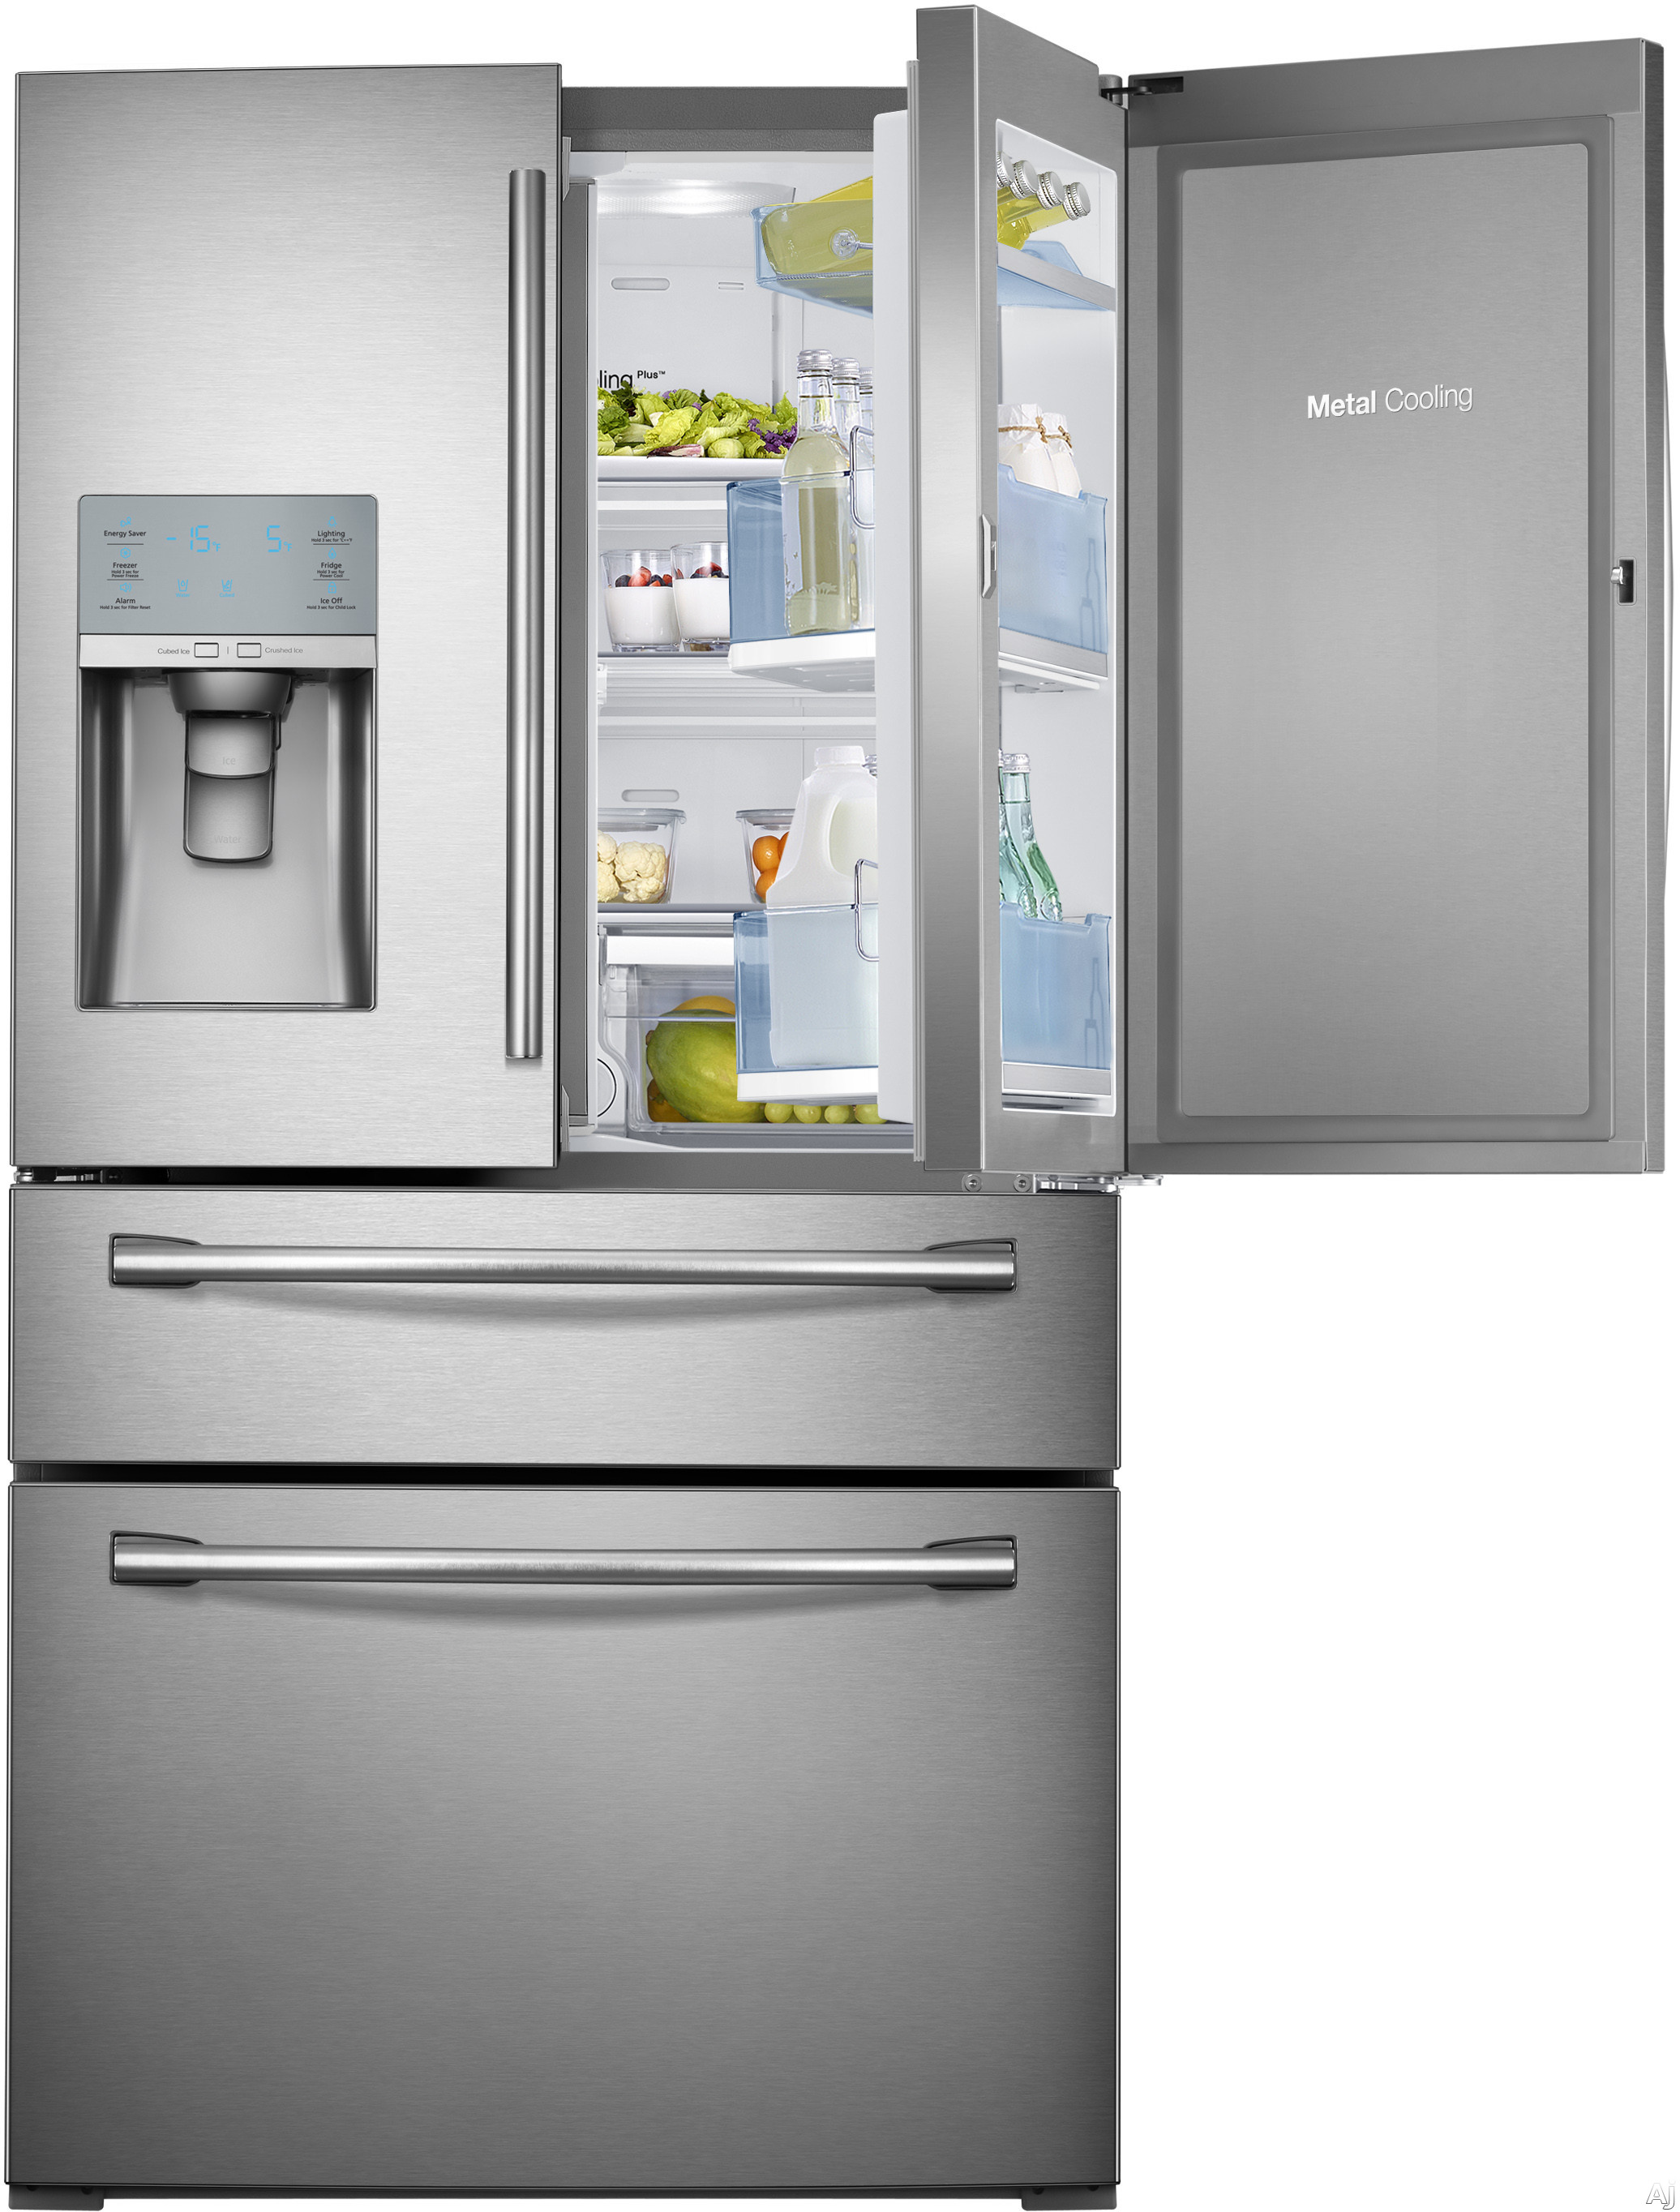 Samsung Rf30hbedbsr 29 5 Cu Ft French Door Refrigerator